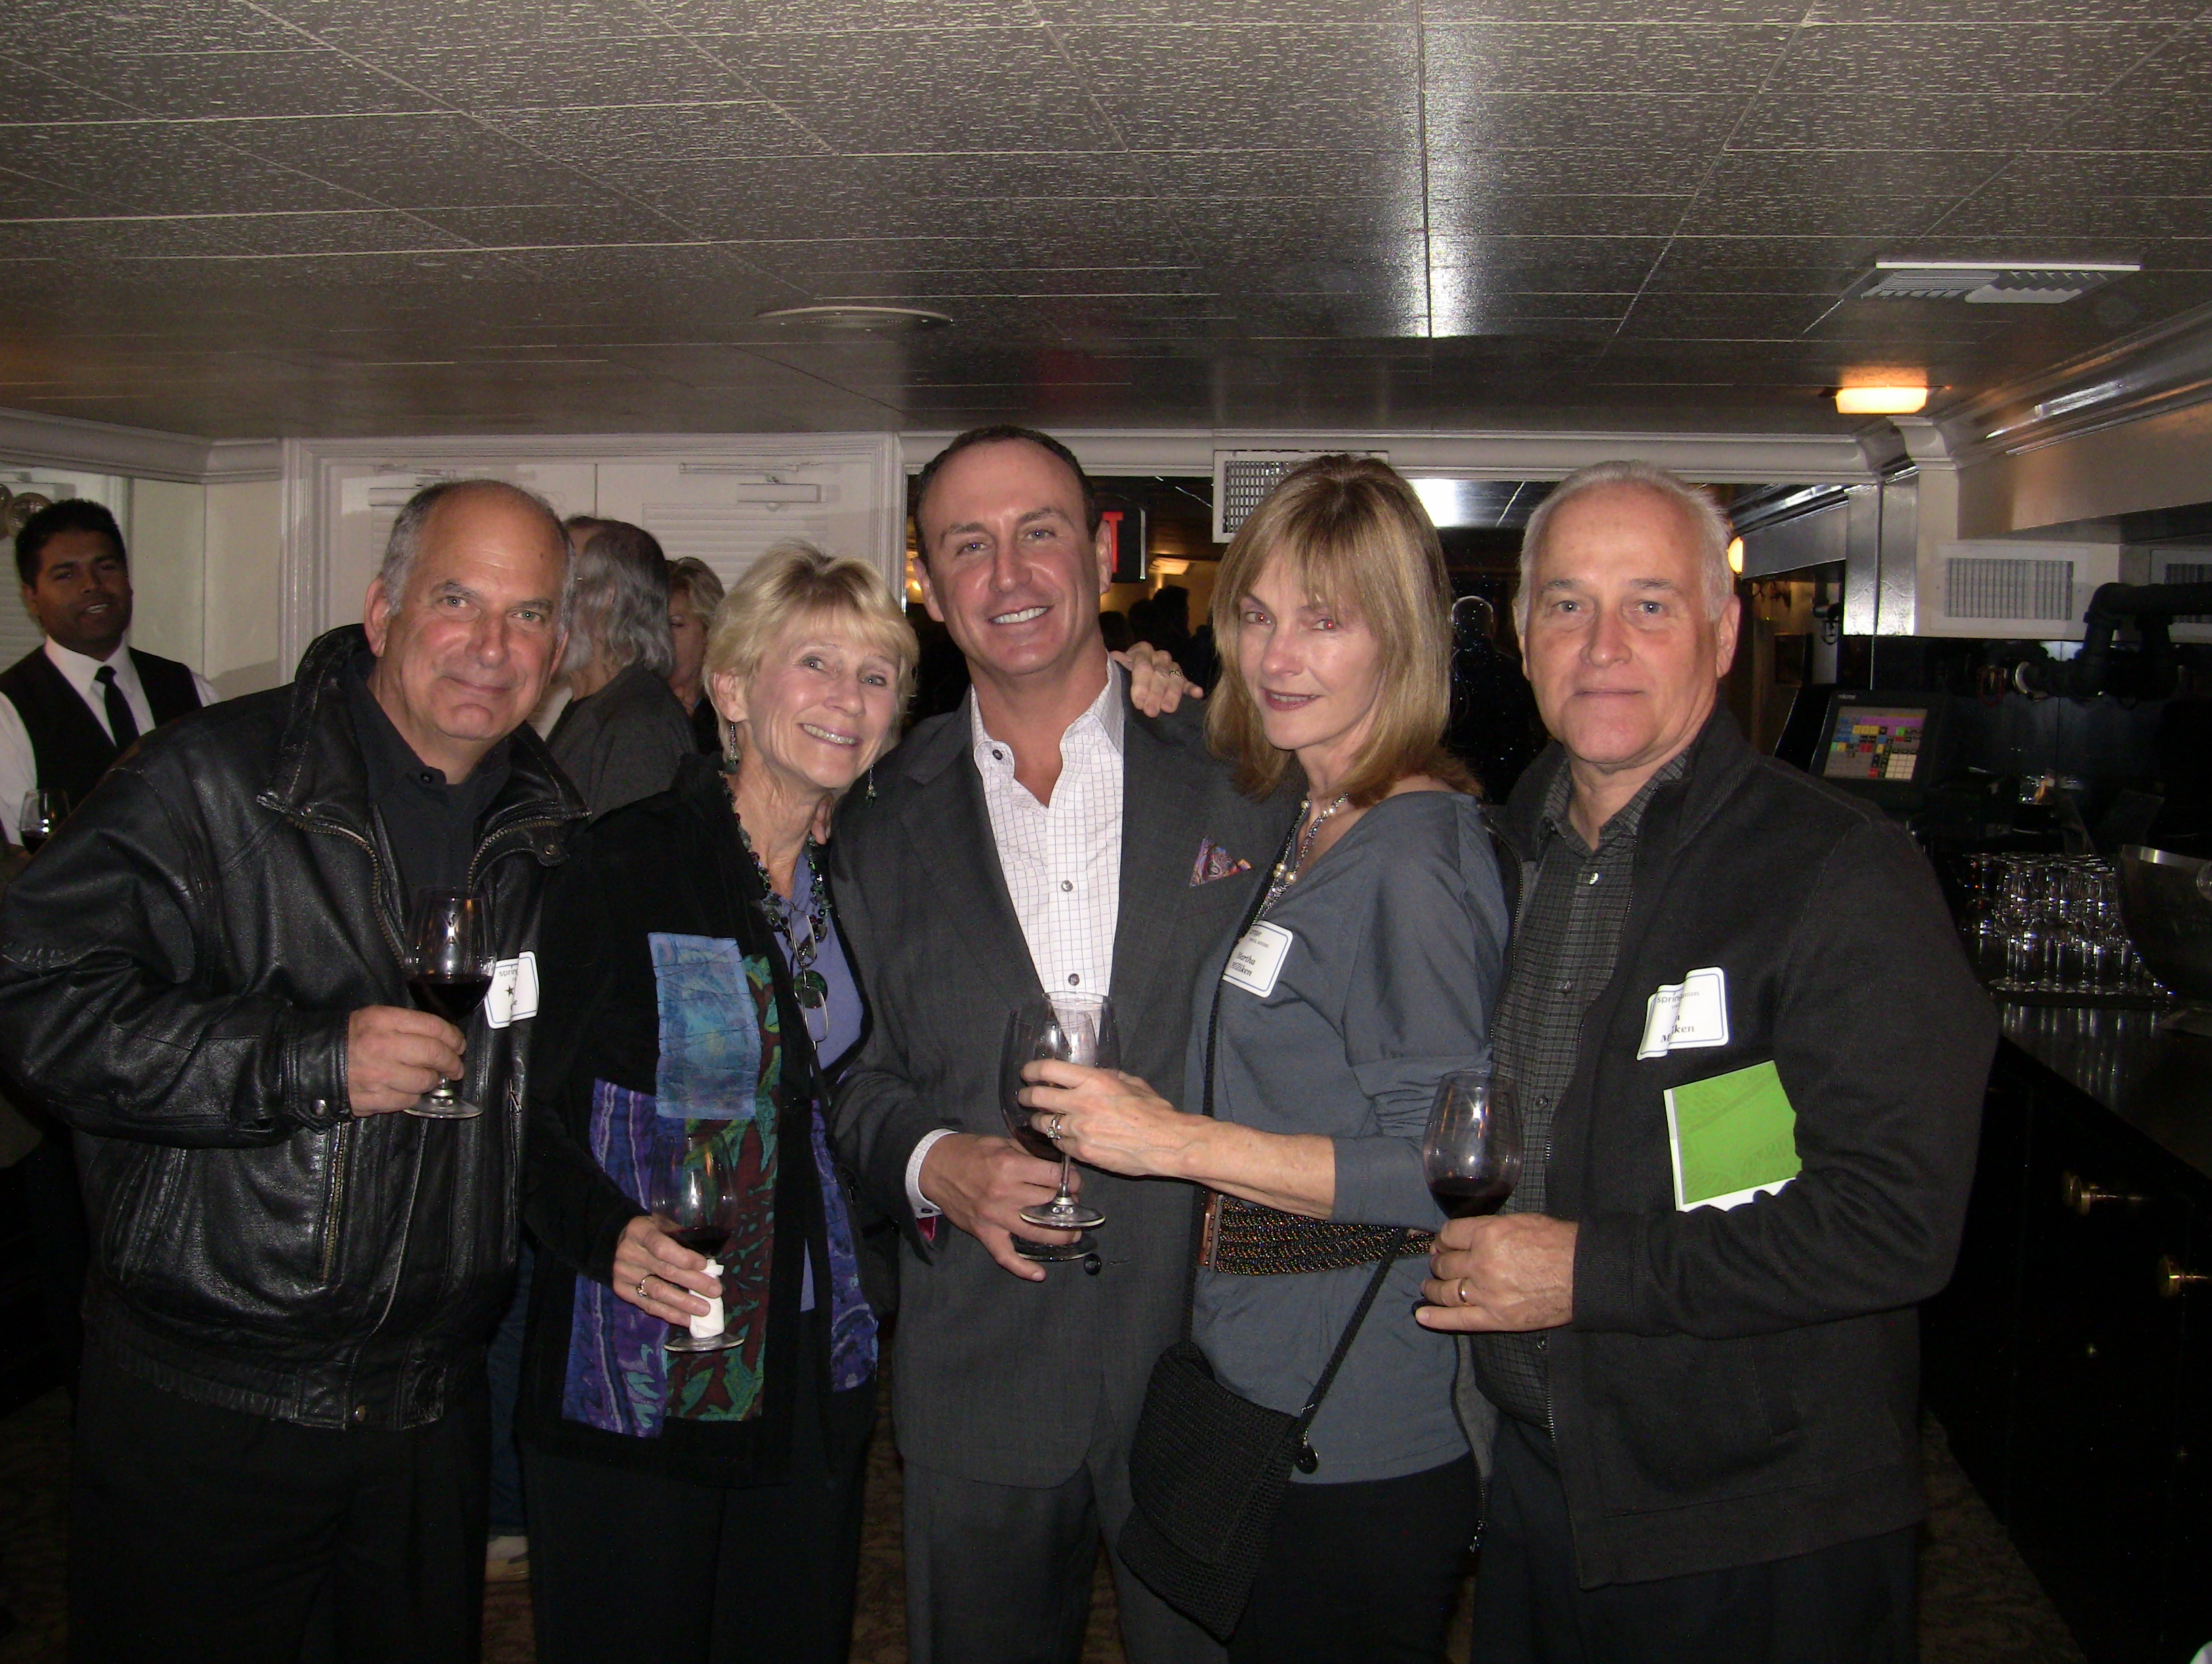 Keith Springer's Client Wine Tasting Event